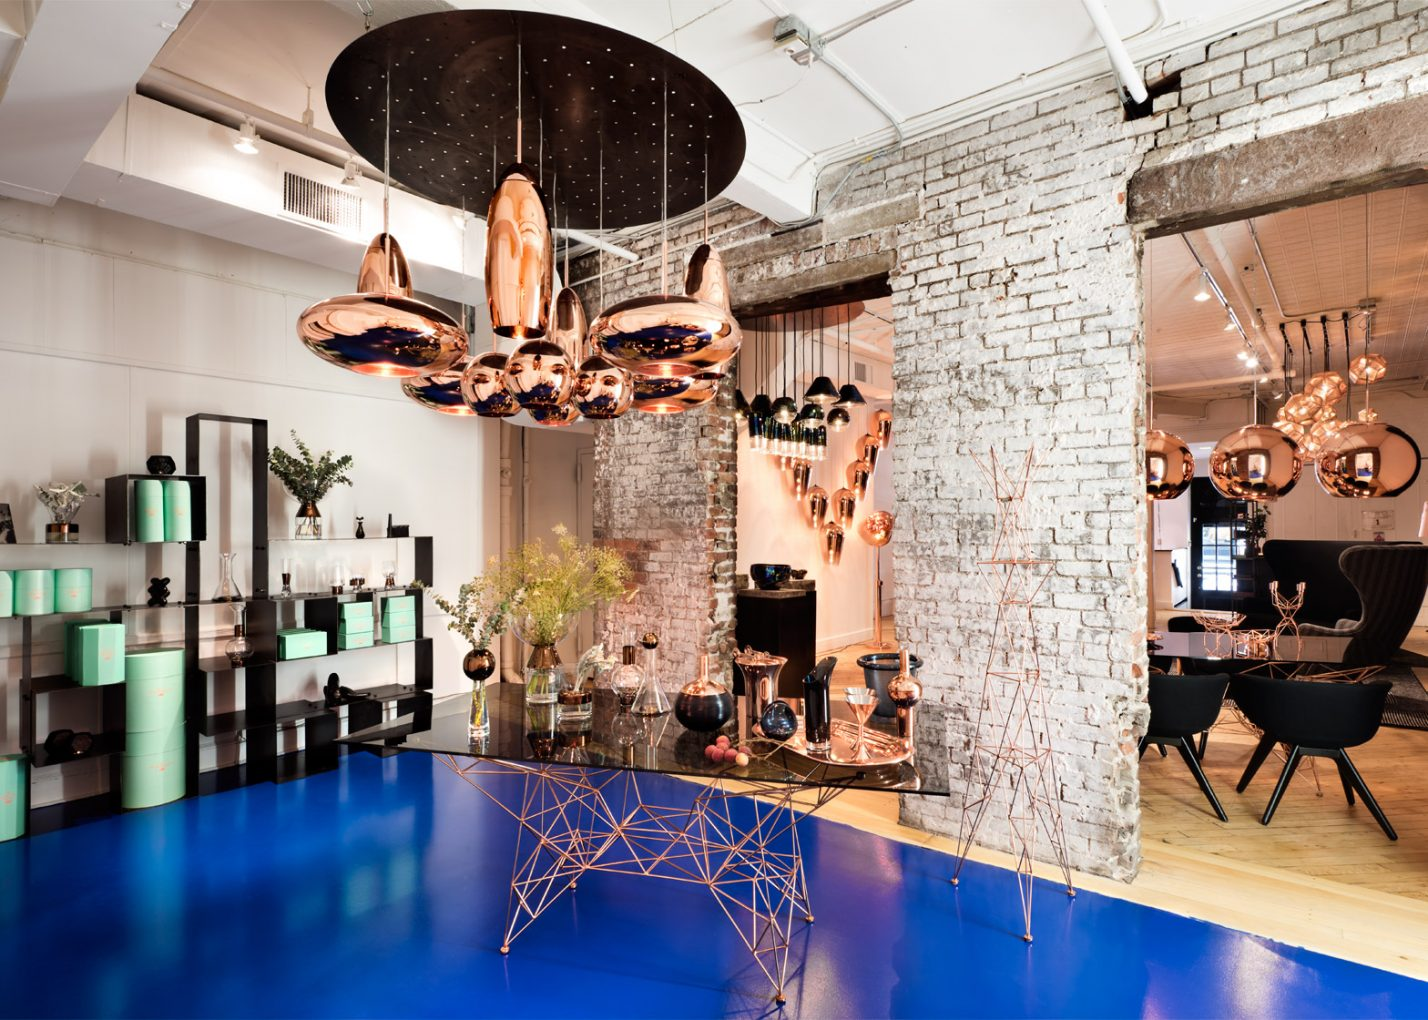 tom dixon store in new york city guide new york city guide NEW YORK CITY GUIDE tom dixon howard street soho